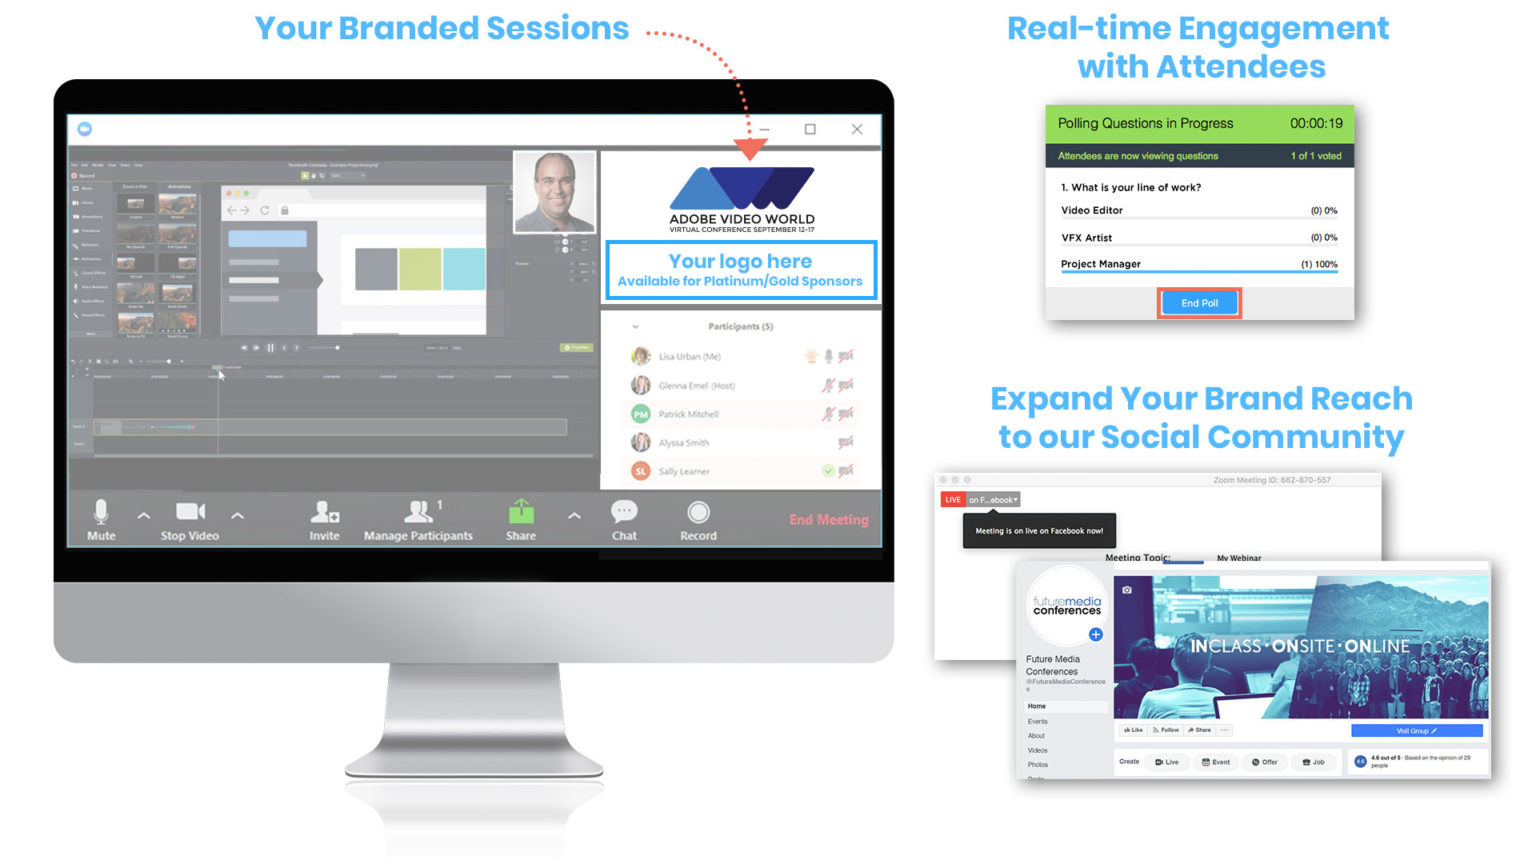 Branded session examples